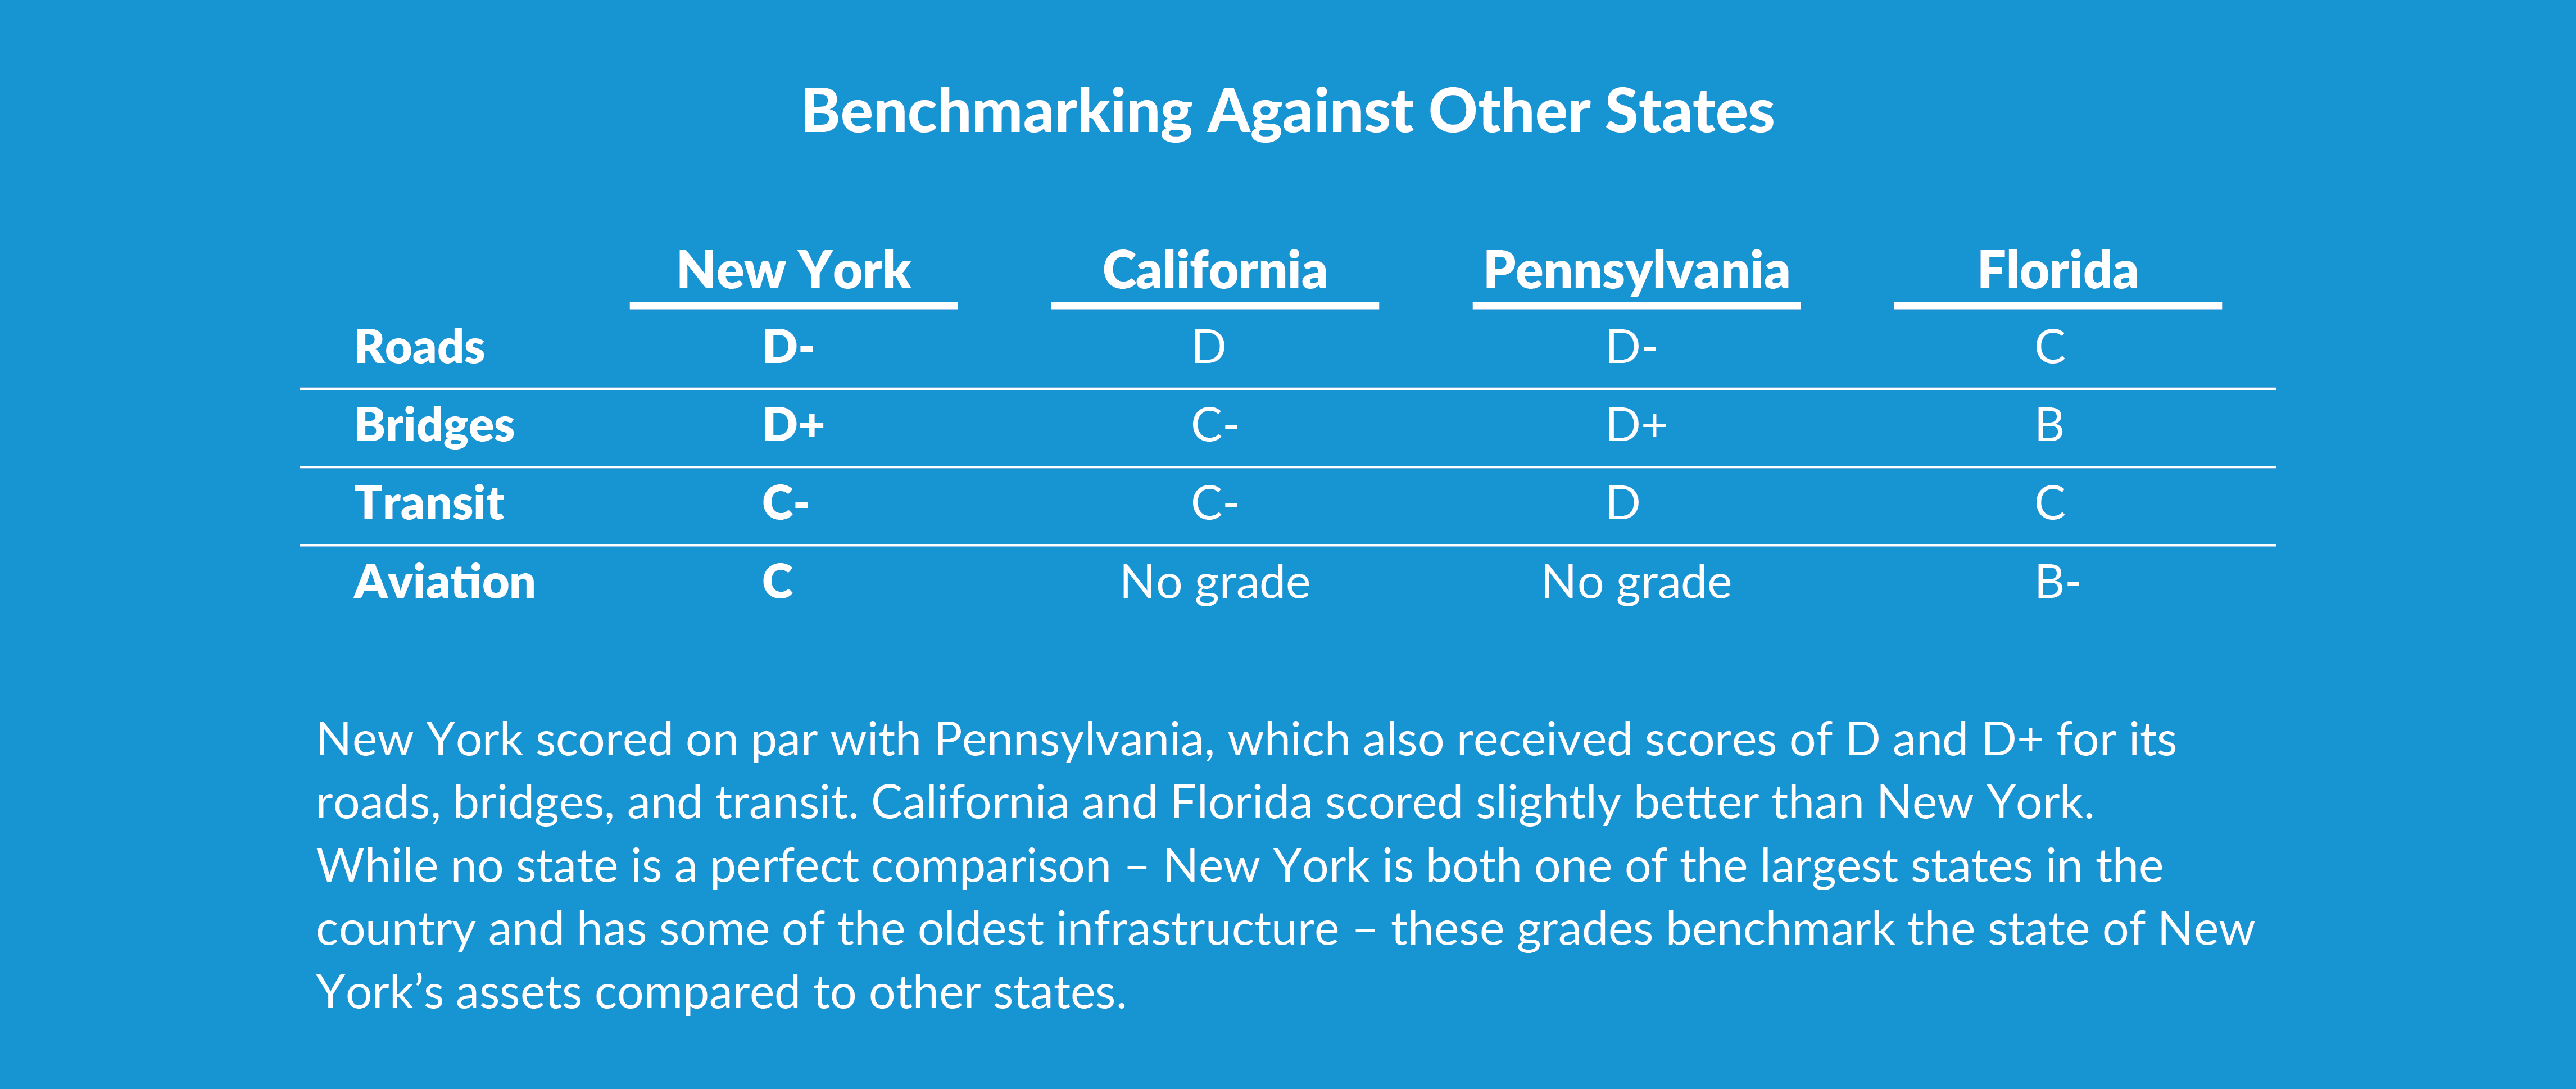 BENCHMARKING AGAINST OTHER STATES